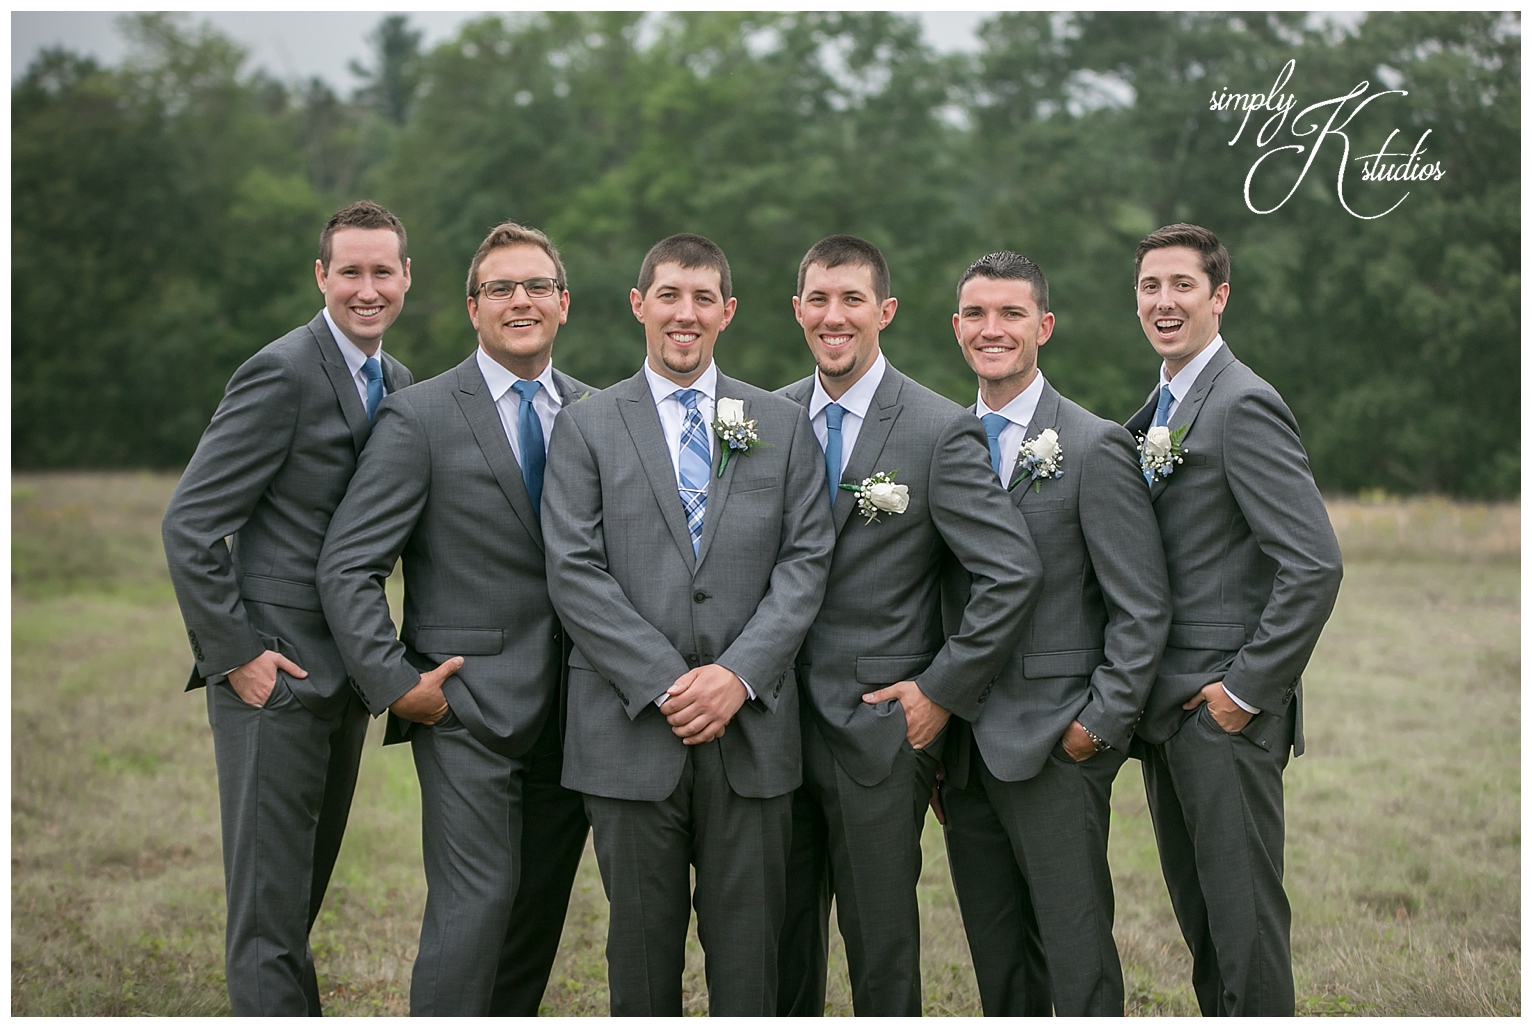 Wedding Photographers near Manchester CT.jpg